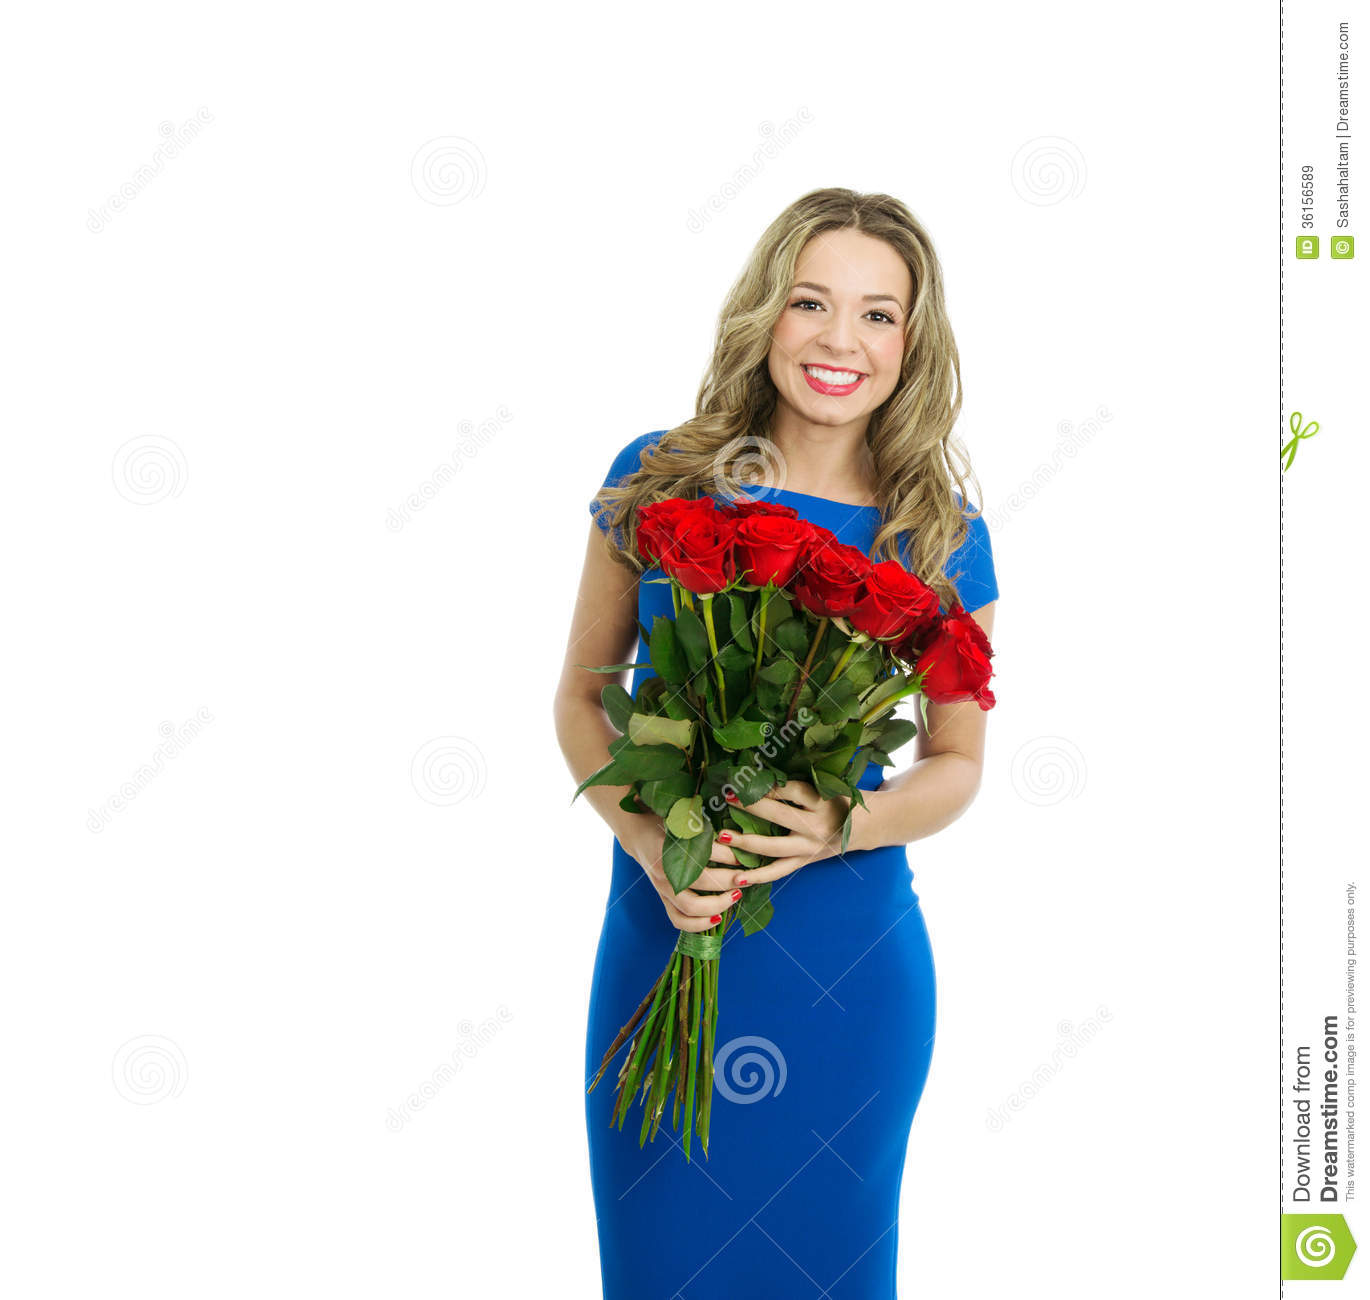 makeup valentine's day cards - Beautiful Woman With Bouquet Red Roses Royalty Free